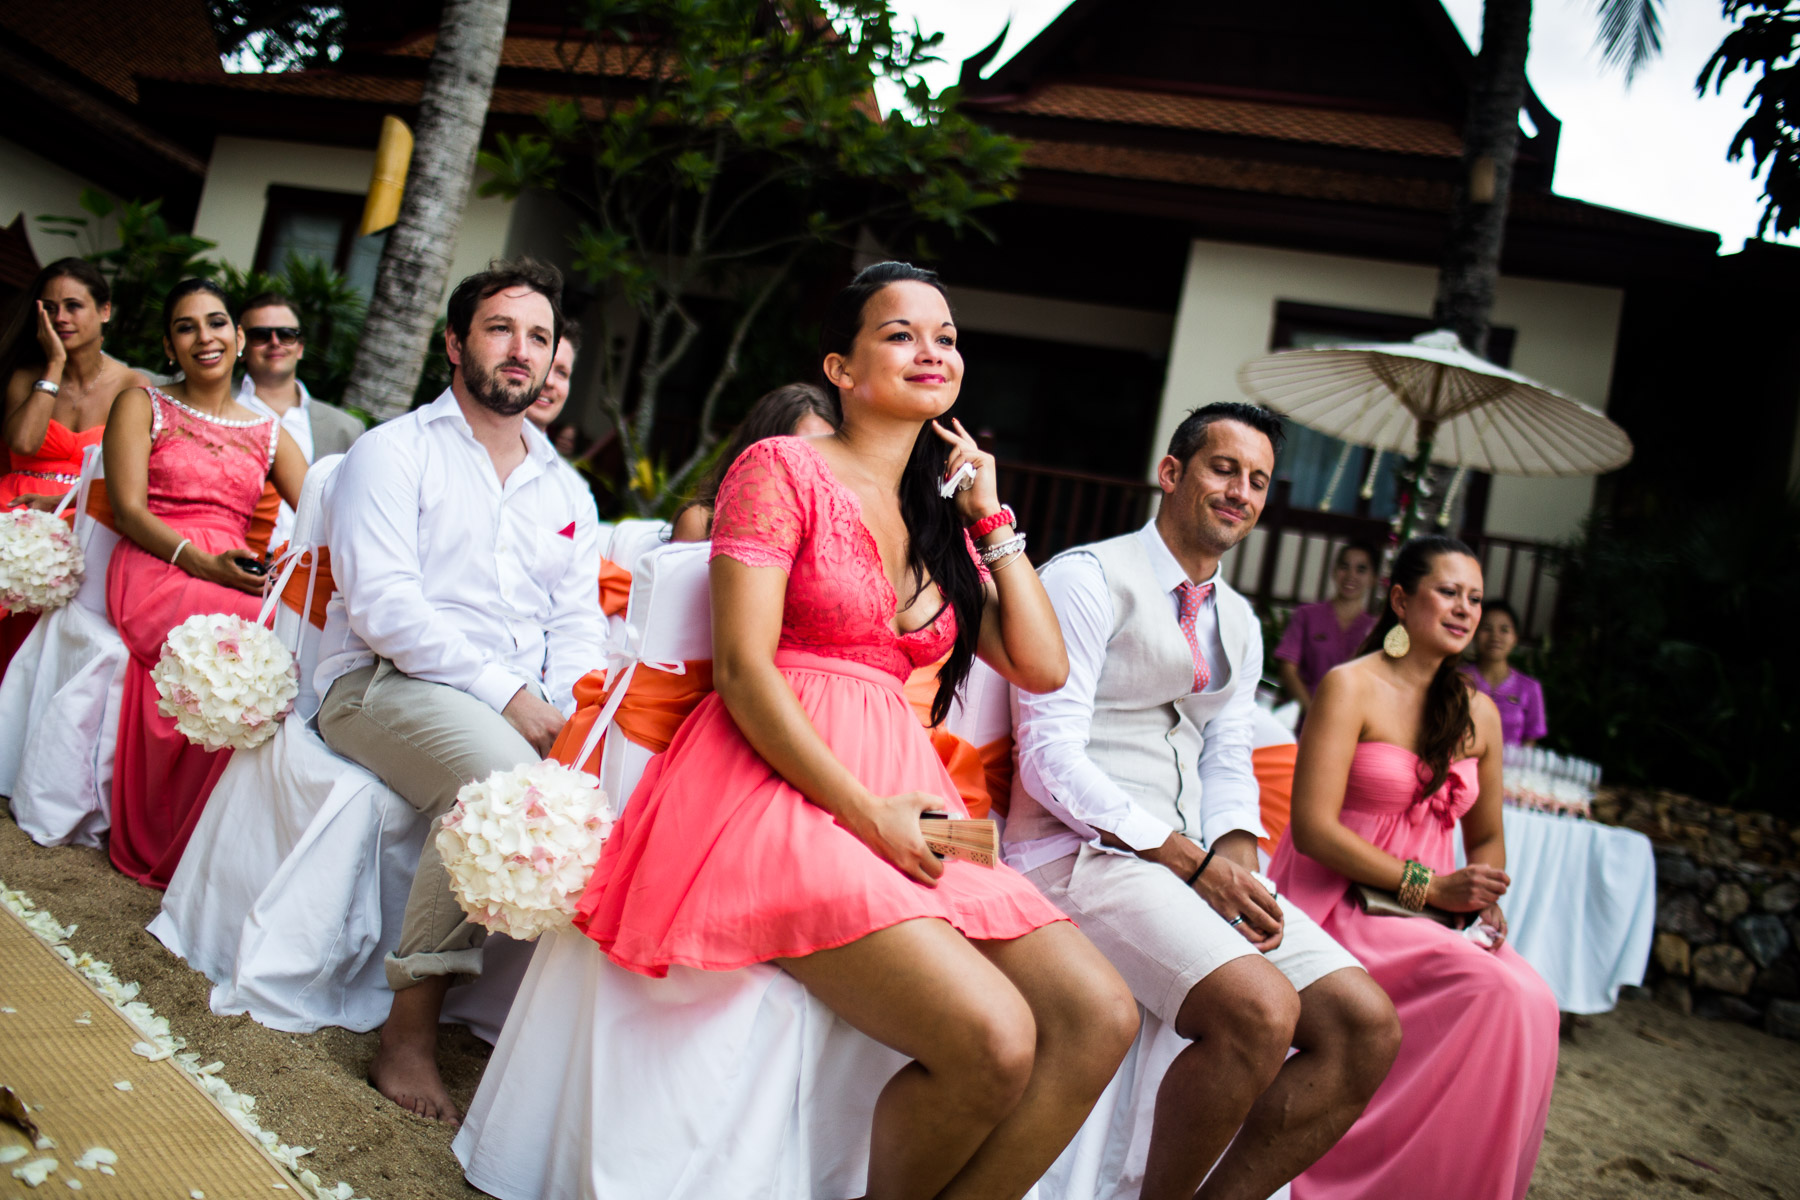 Southeast-Asia-Destination-Wedding-Photography-51